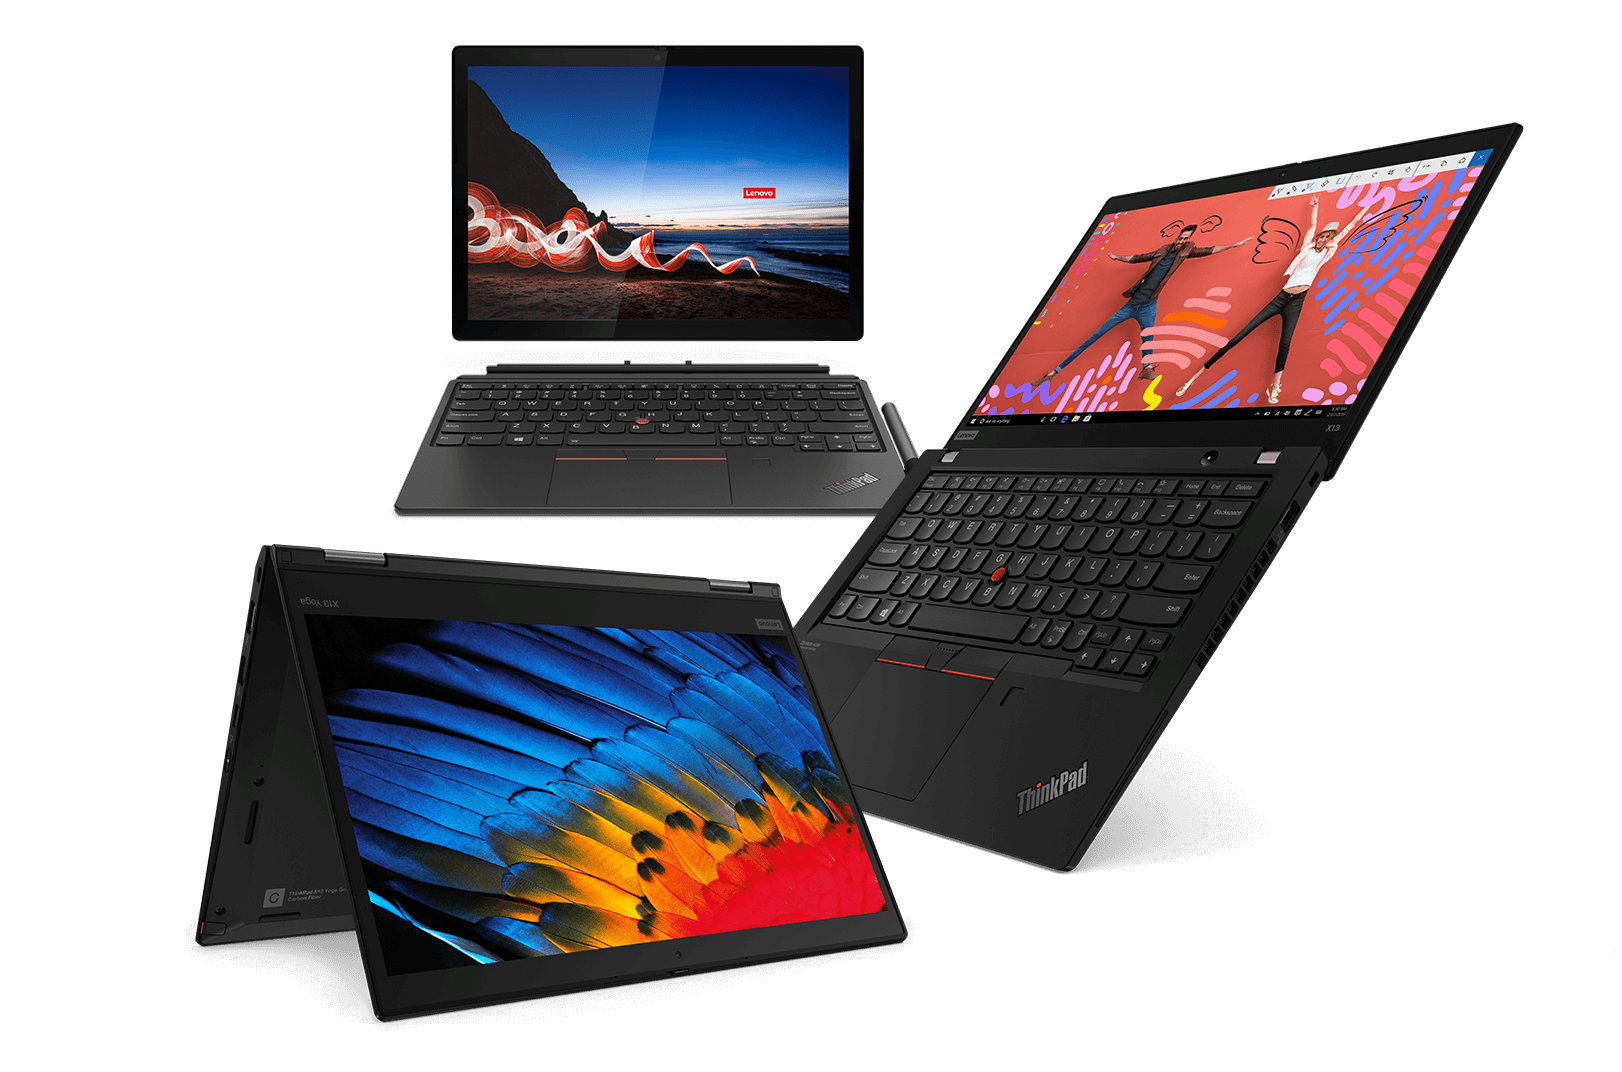 Lenovo ThinkPad X series family of products